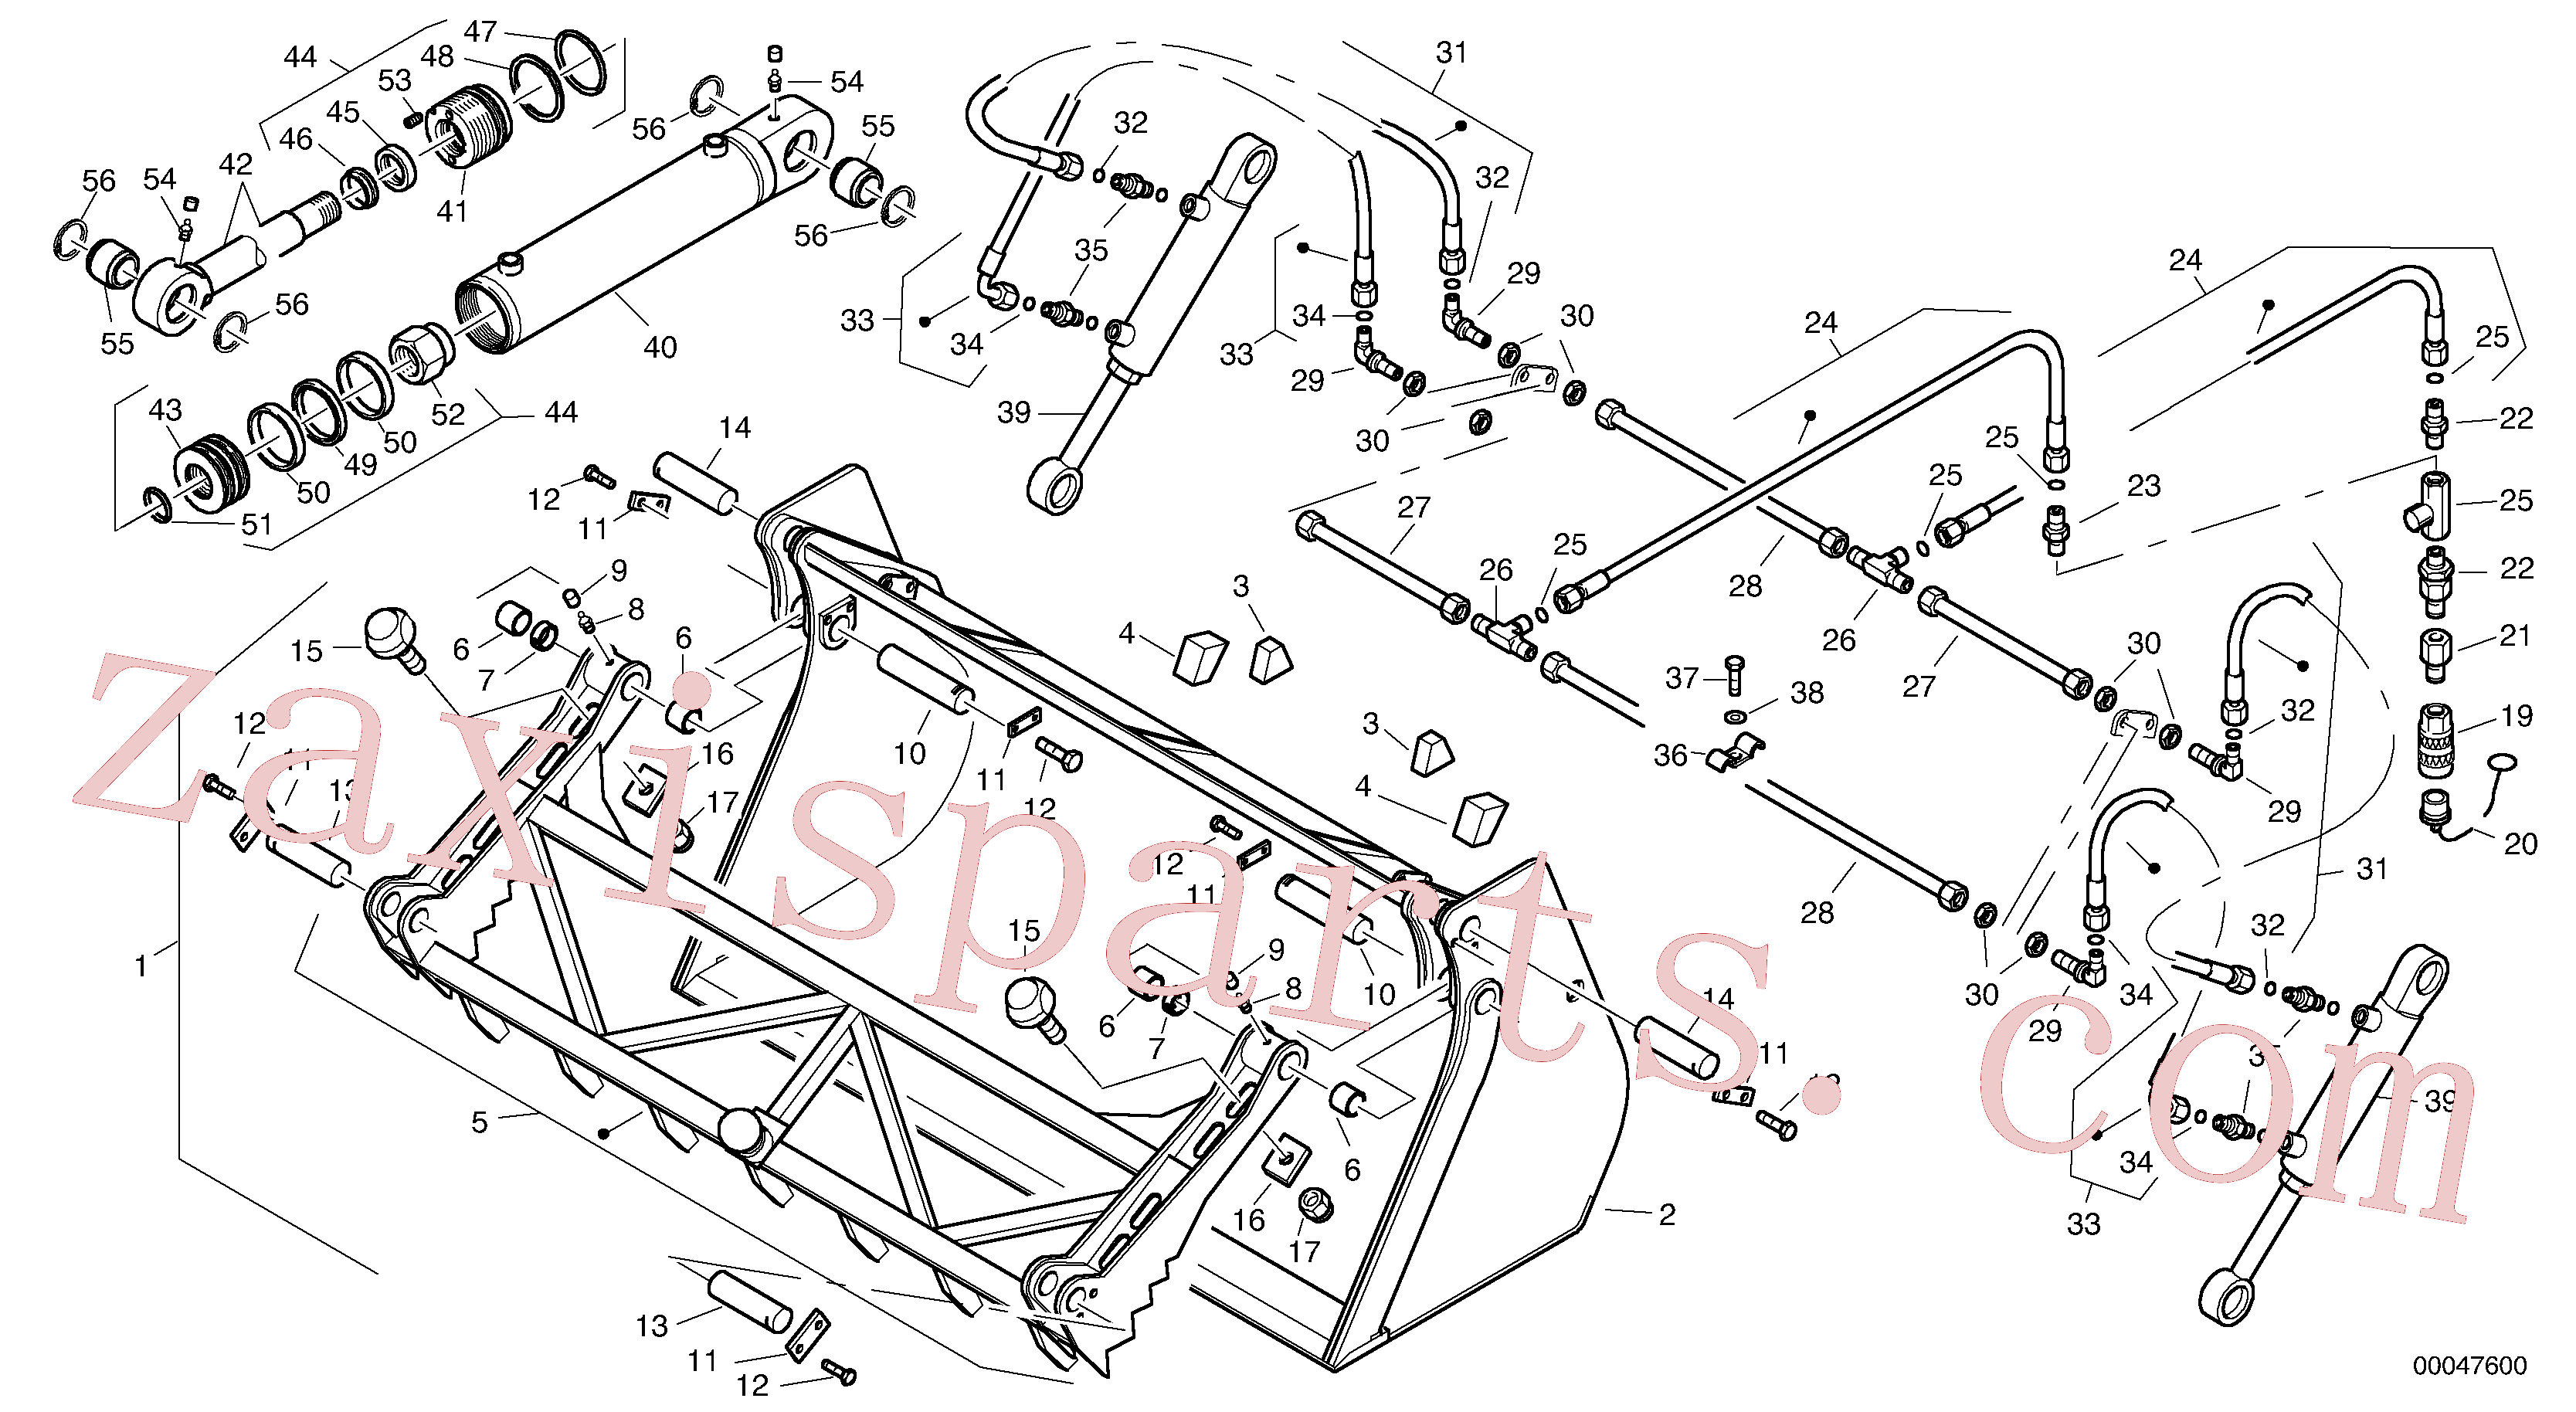 VOE11305362 for Volvo Grab bucket - TPV(00047600 assembly)